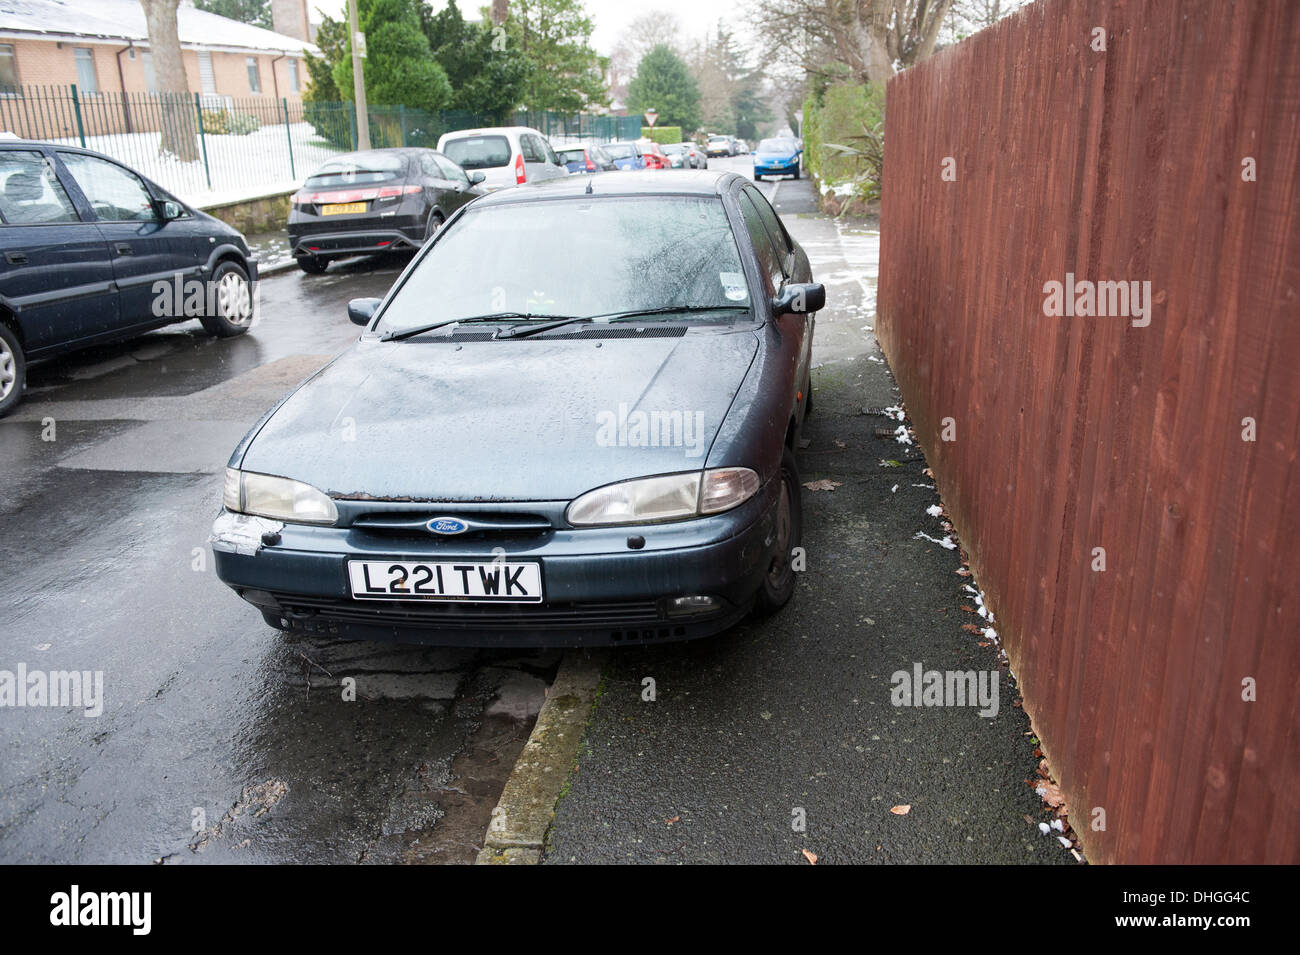 Illegally parked car on pavement blocking sidewalk Stock Photo